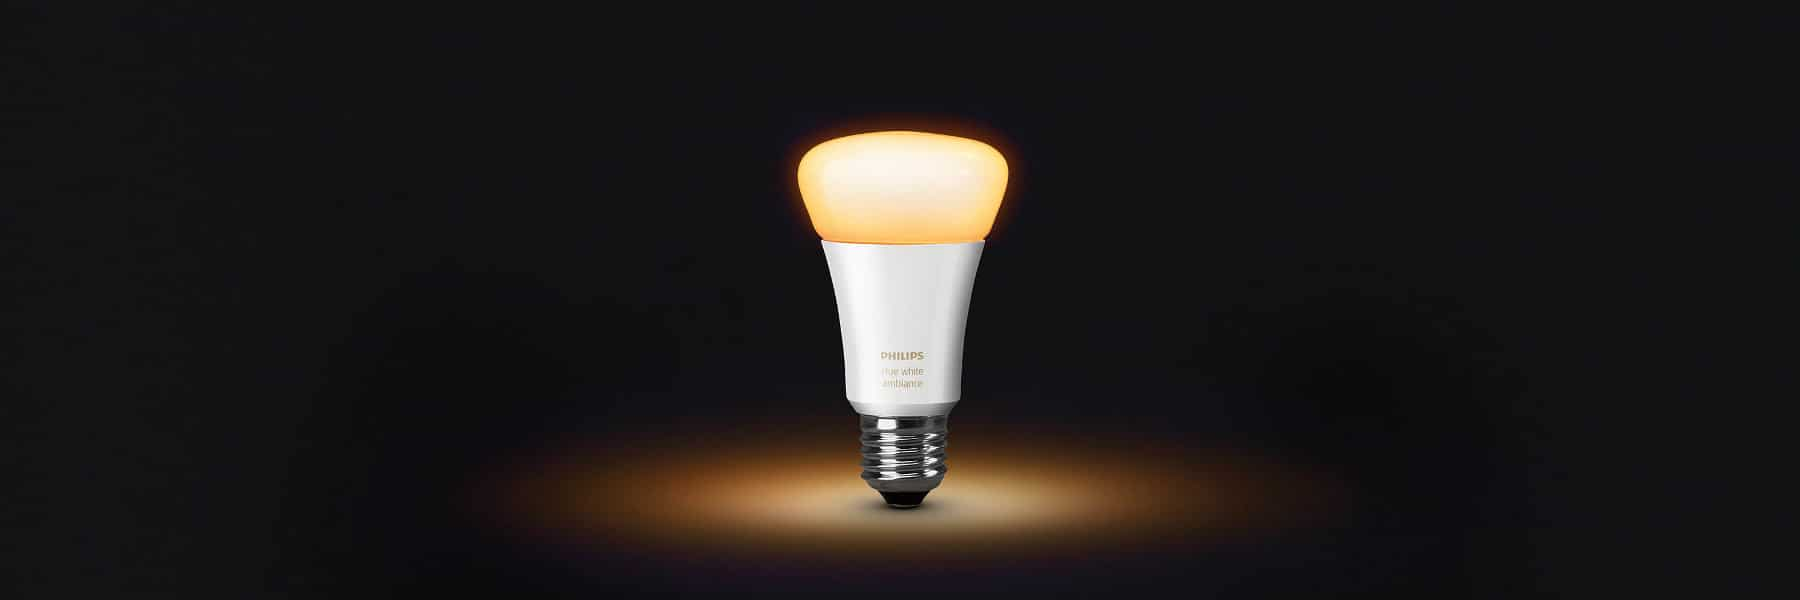 Philips Hue White Ambiance: Neues Mitglied in der Hue Familie